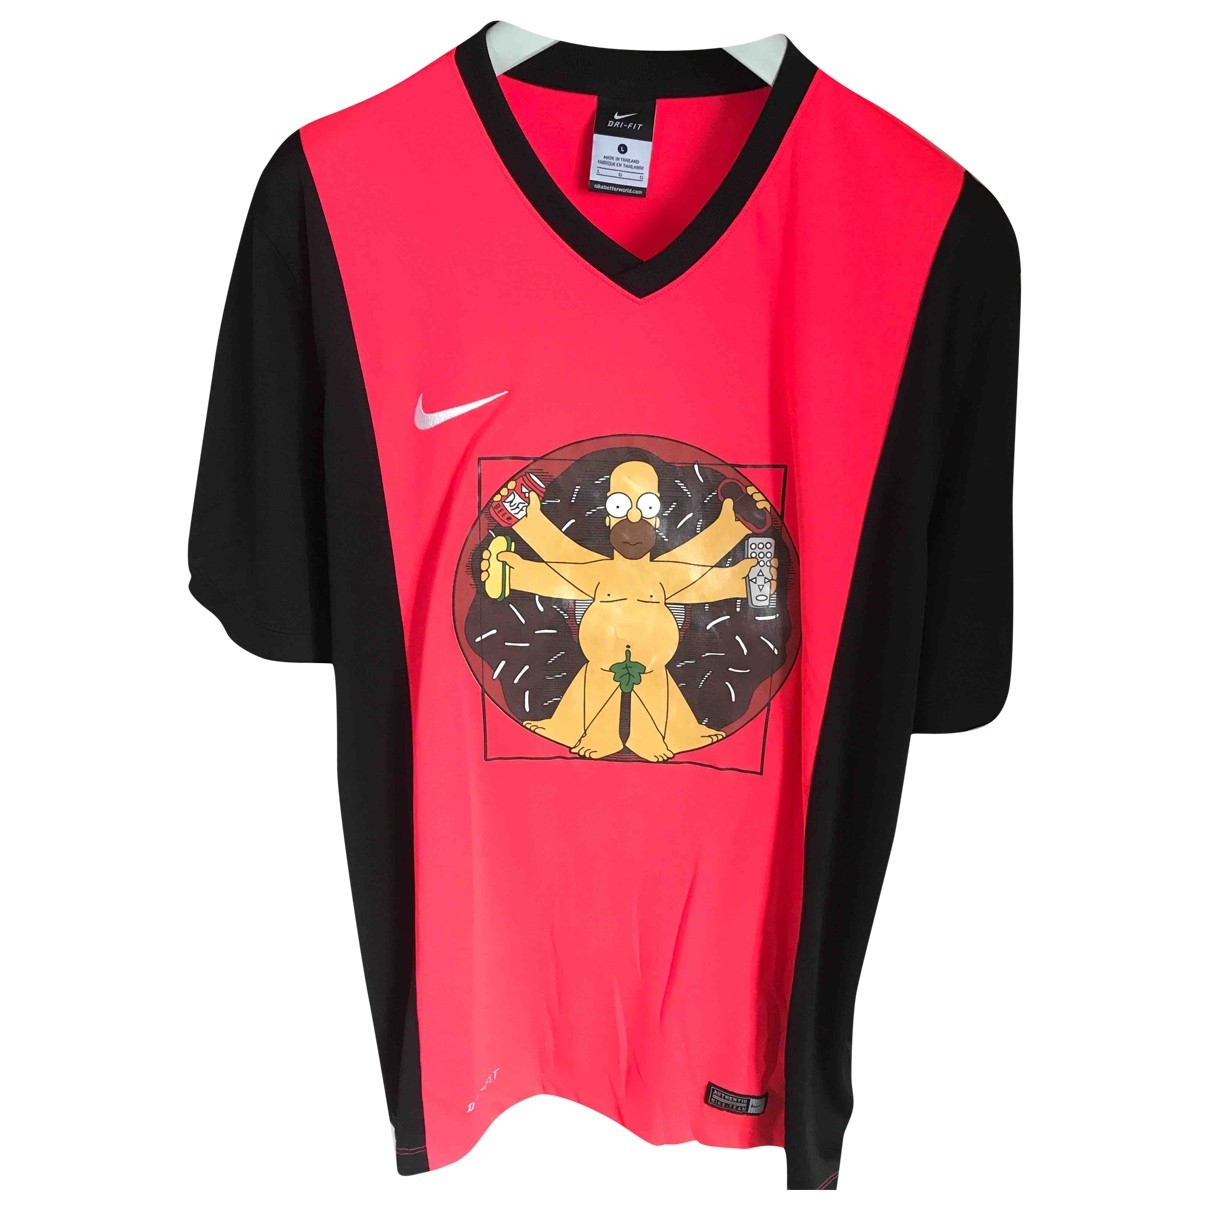 Nike - Tee shirts   pour homme